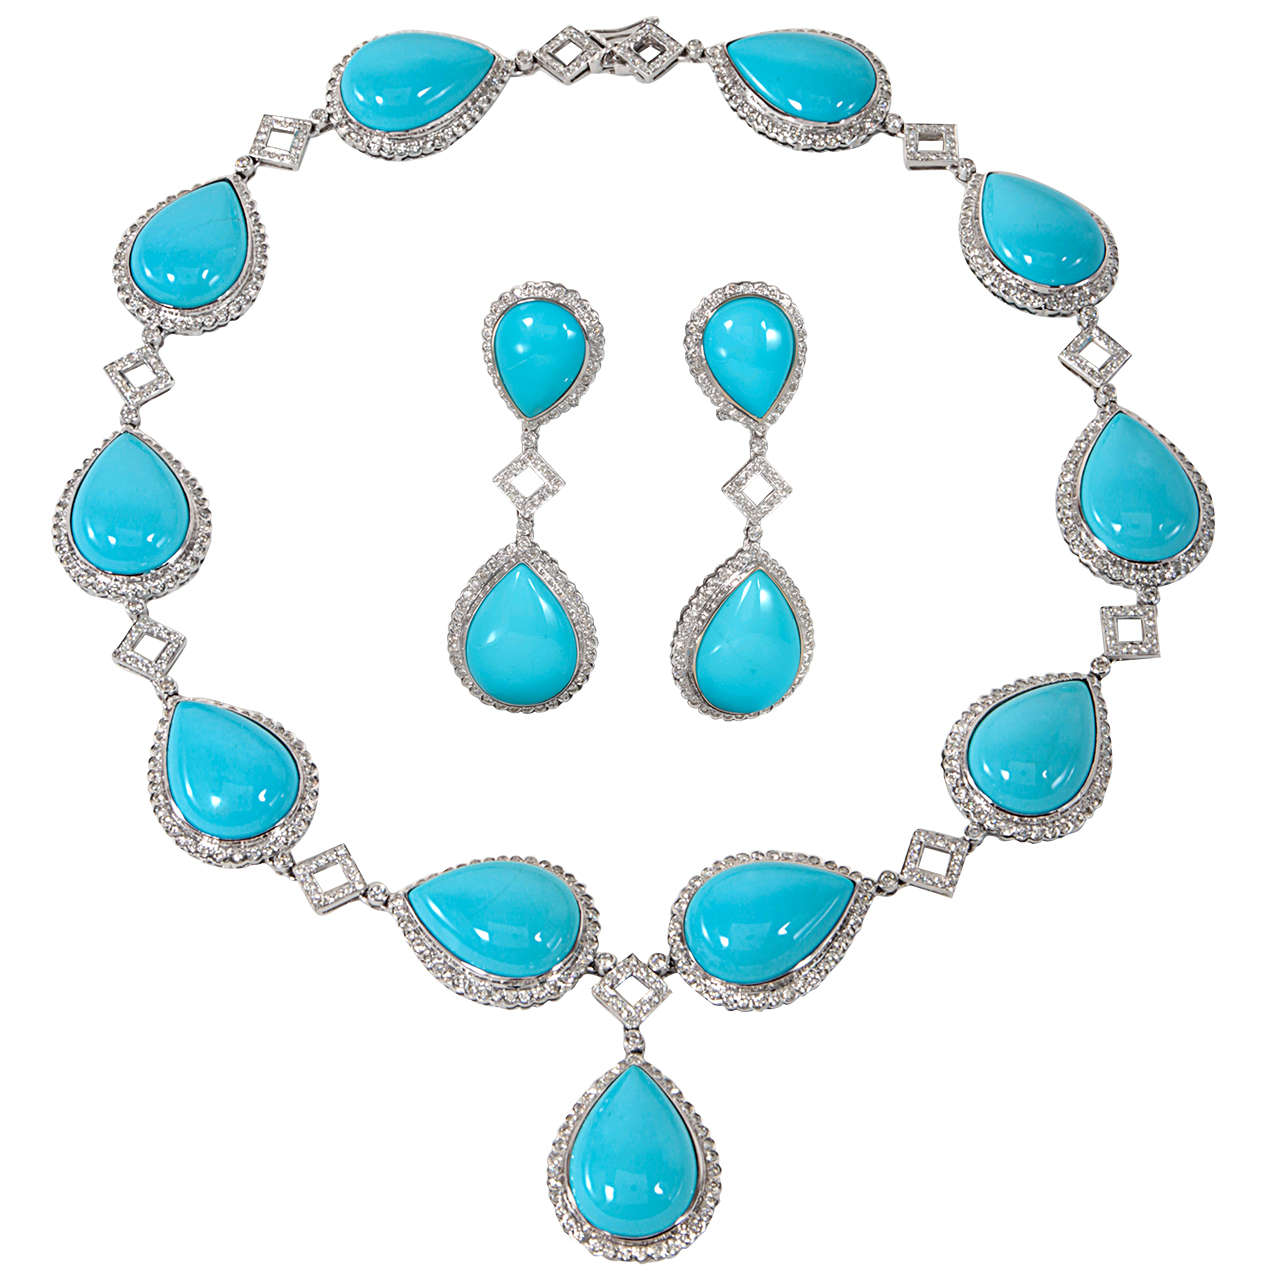 Turquoise And Diamond Necklace And Earring Set For Sale At 1stdibs